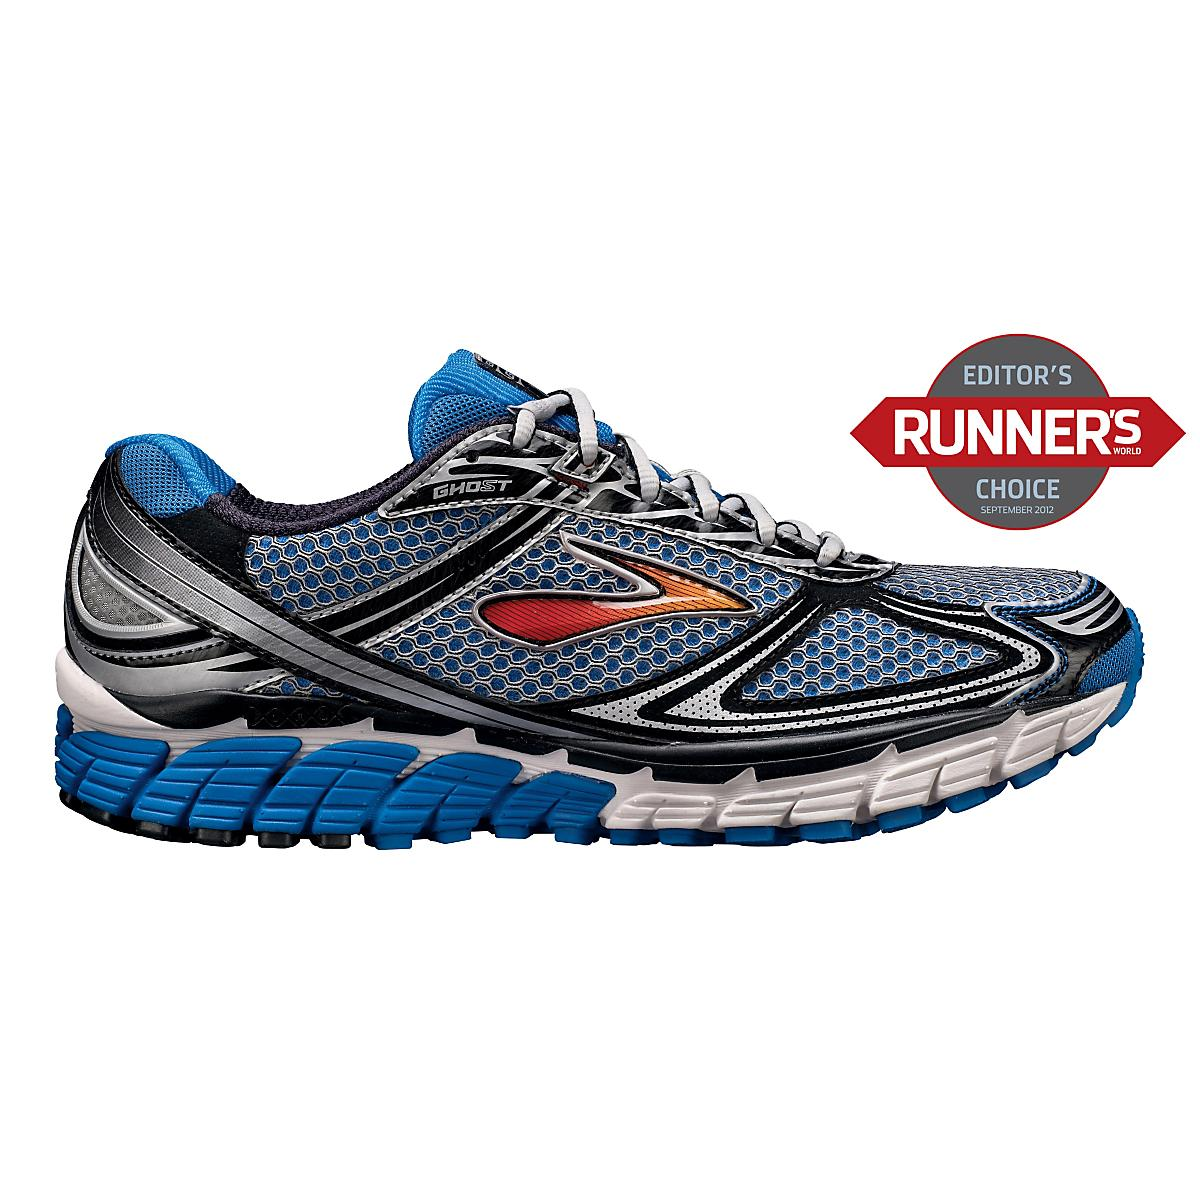 5d087273293 Mens Brooks Ghost 5 Running Shoe at Road Runner Sports